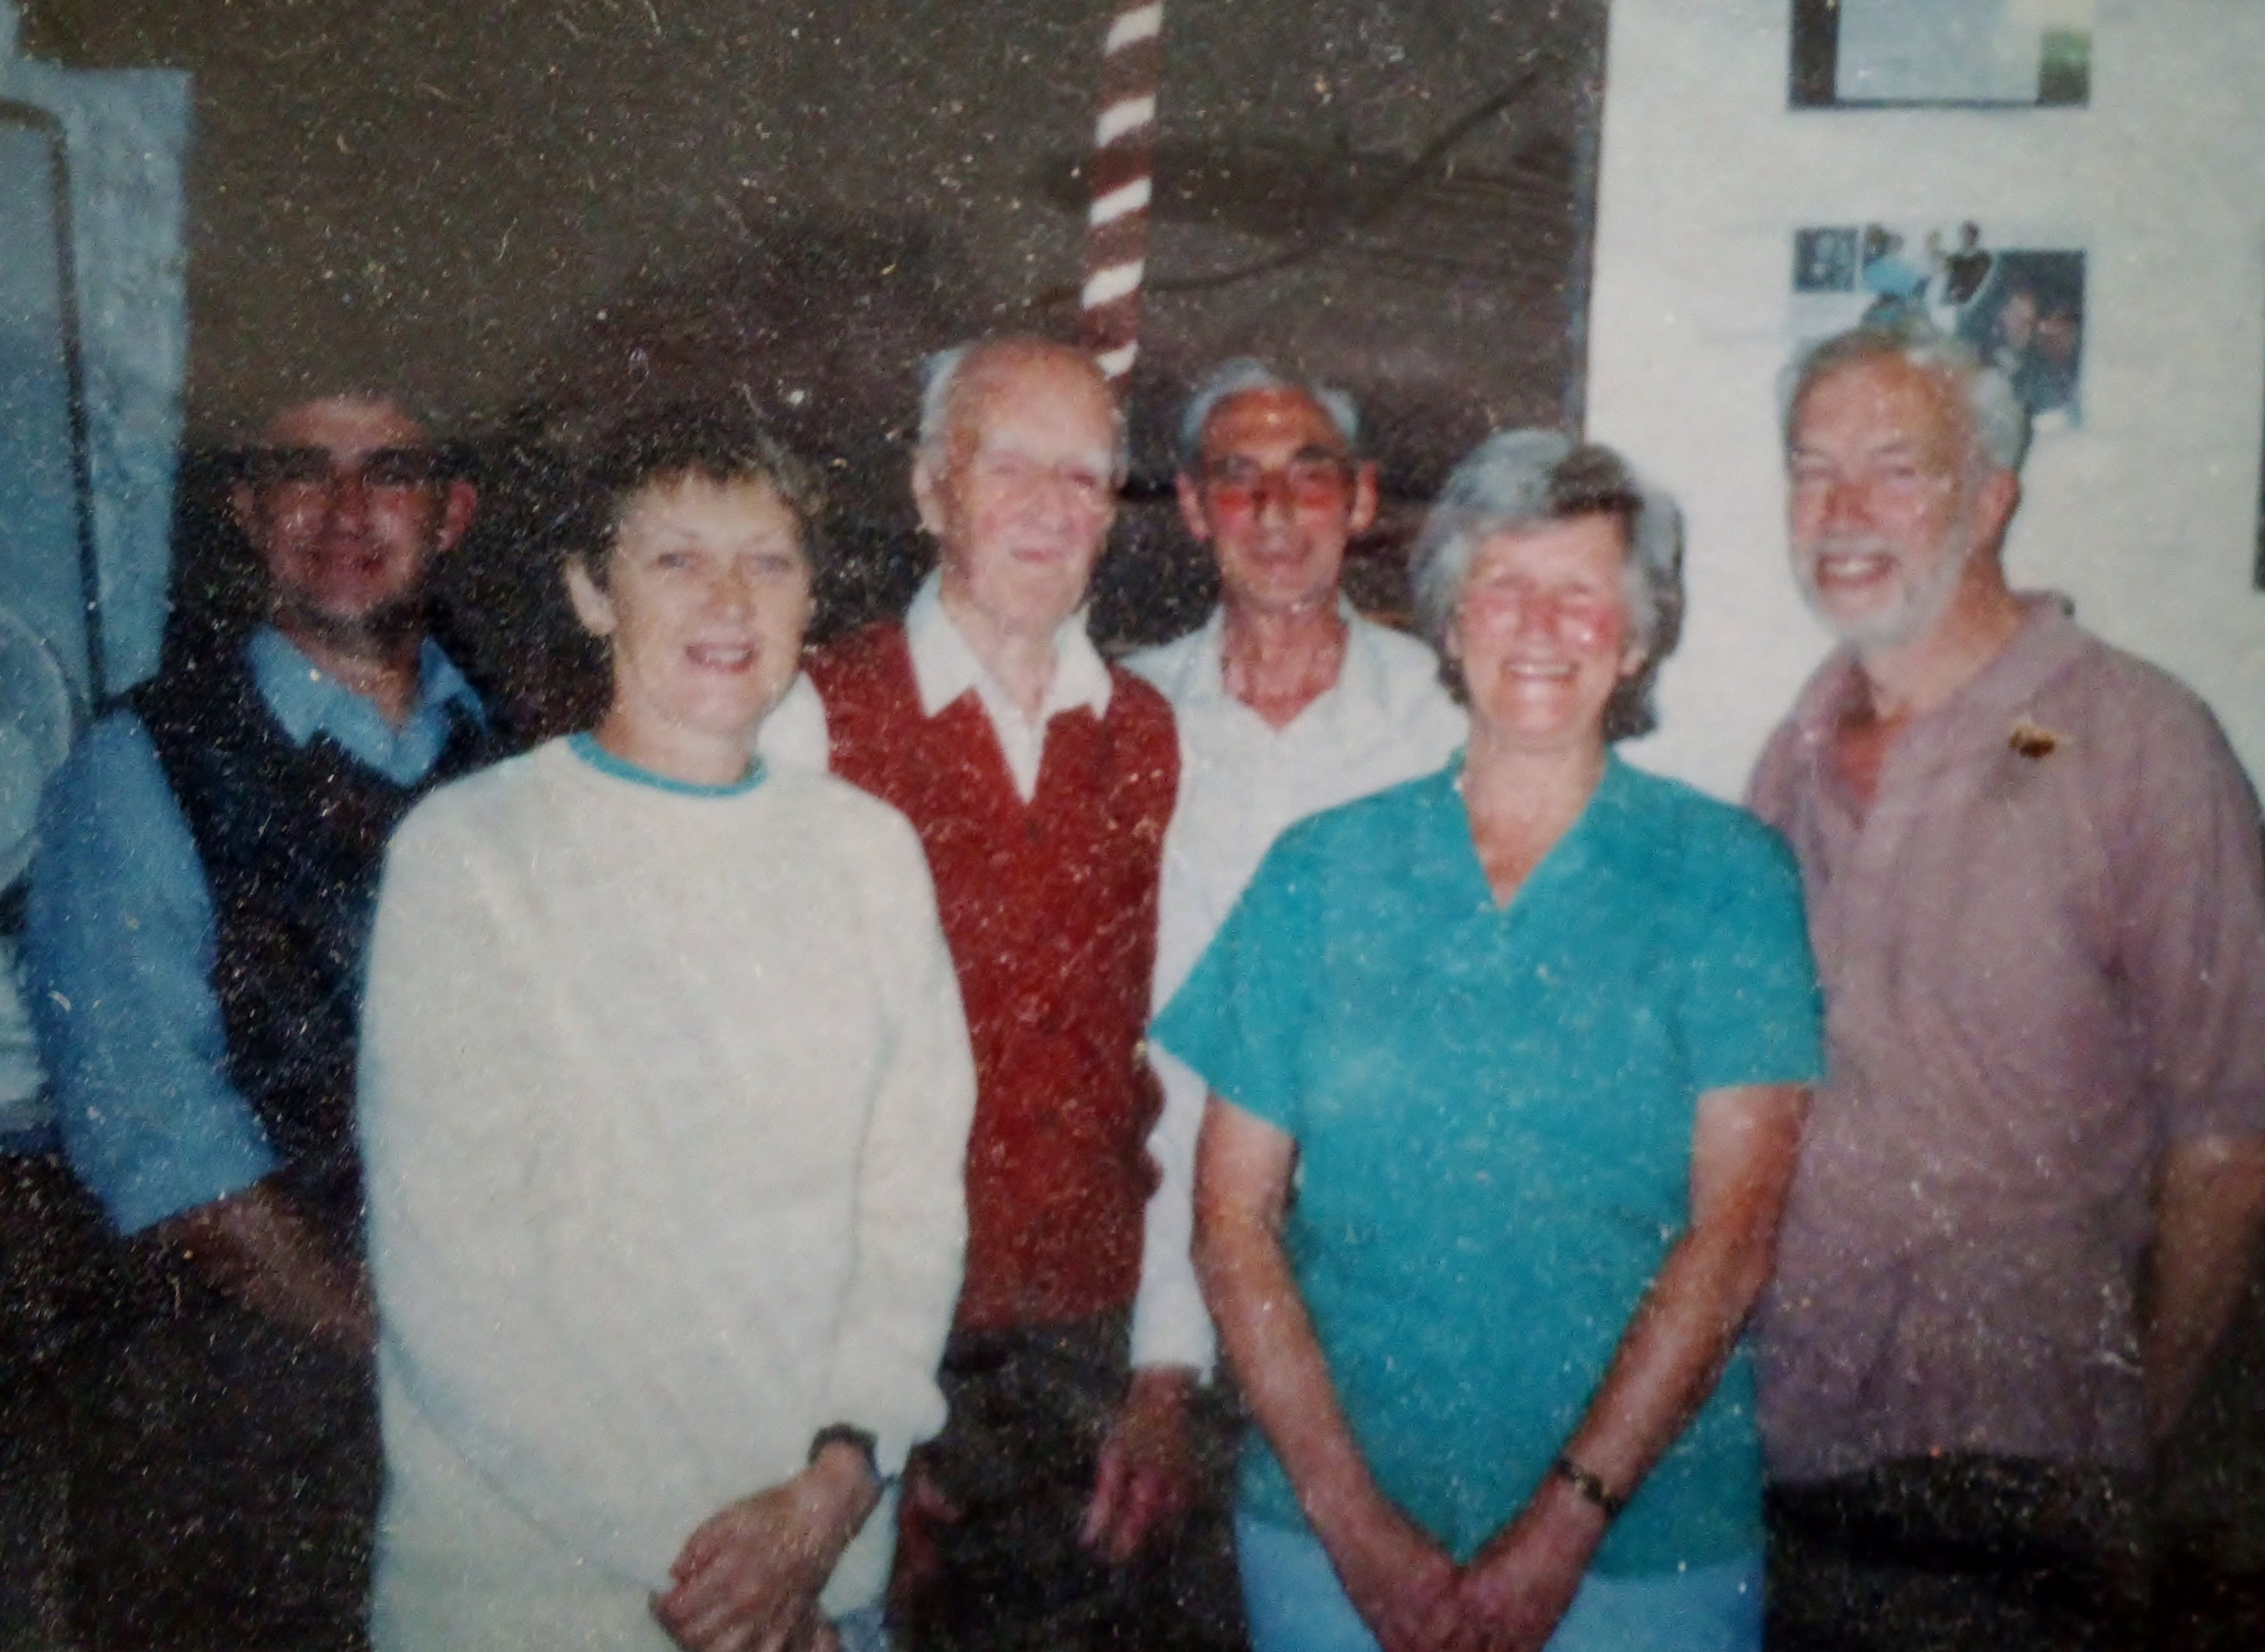 The 94th birthday band